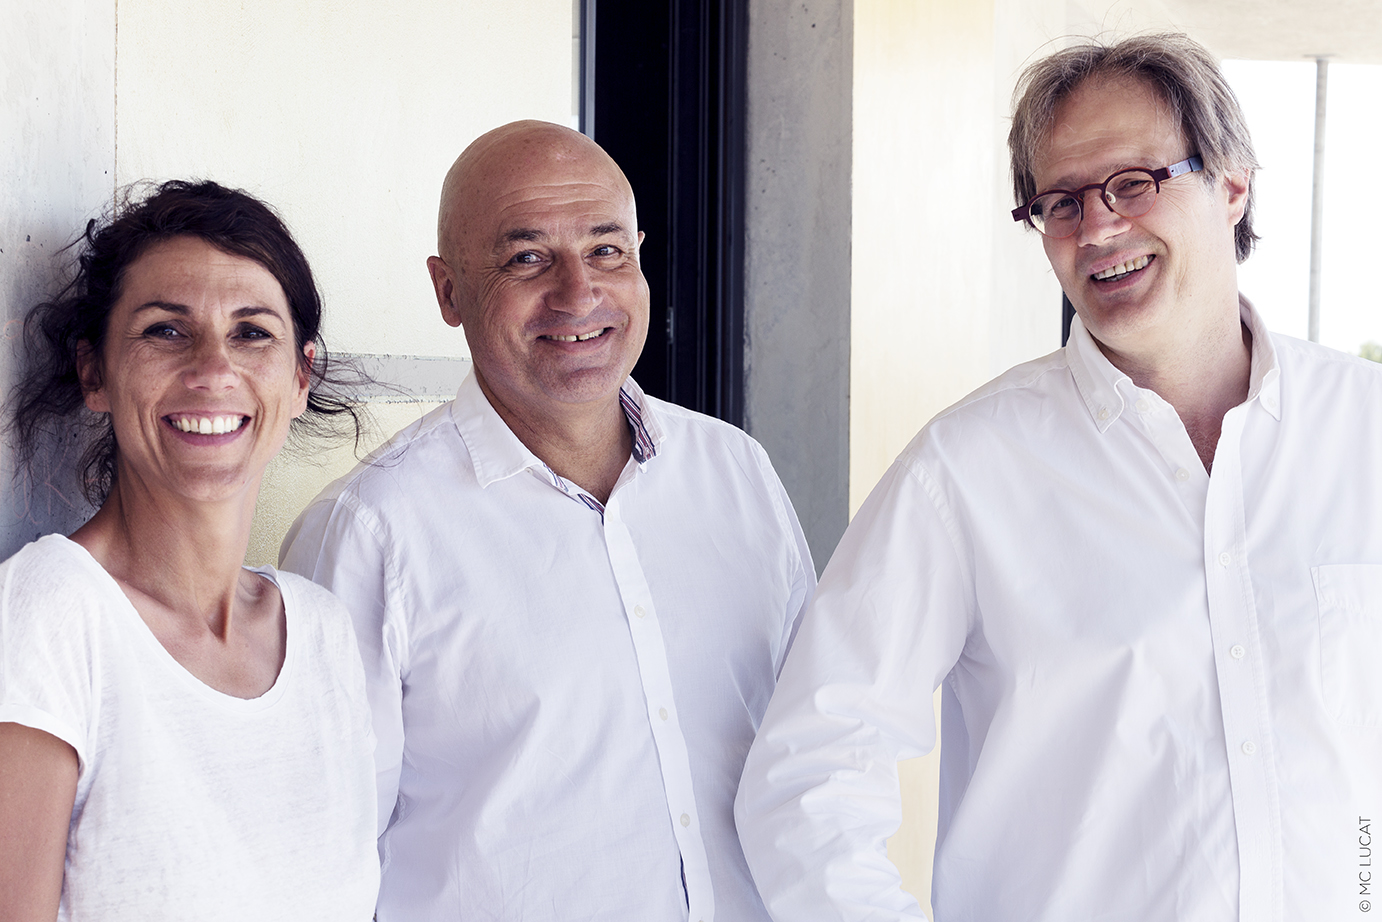 Solveig Orth, François Roux et William Pivetta